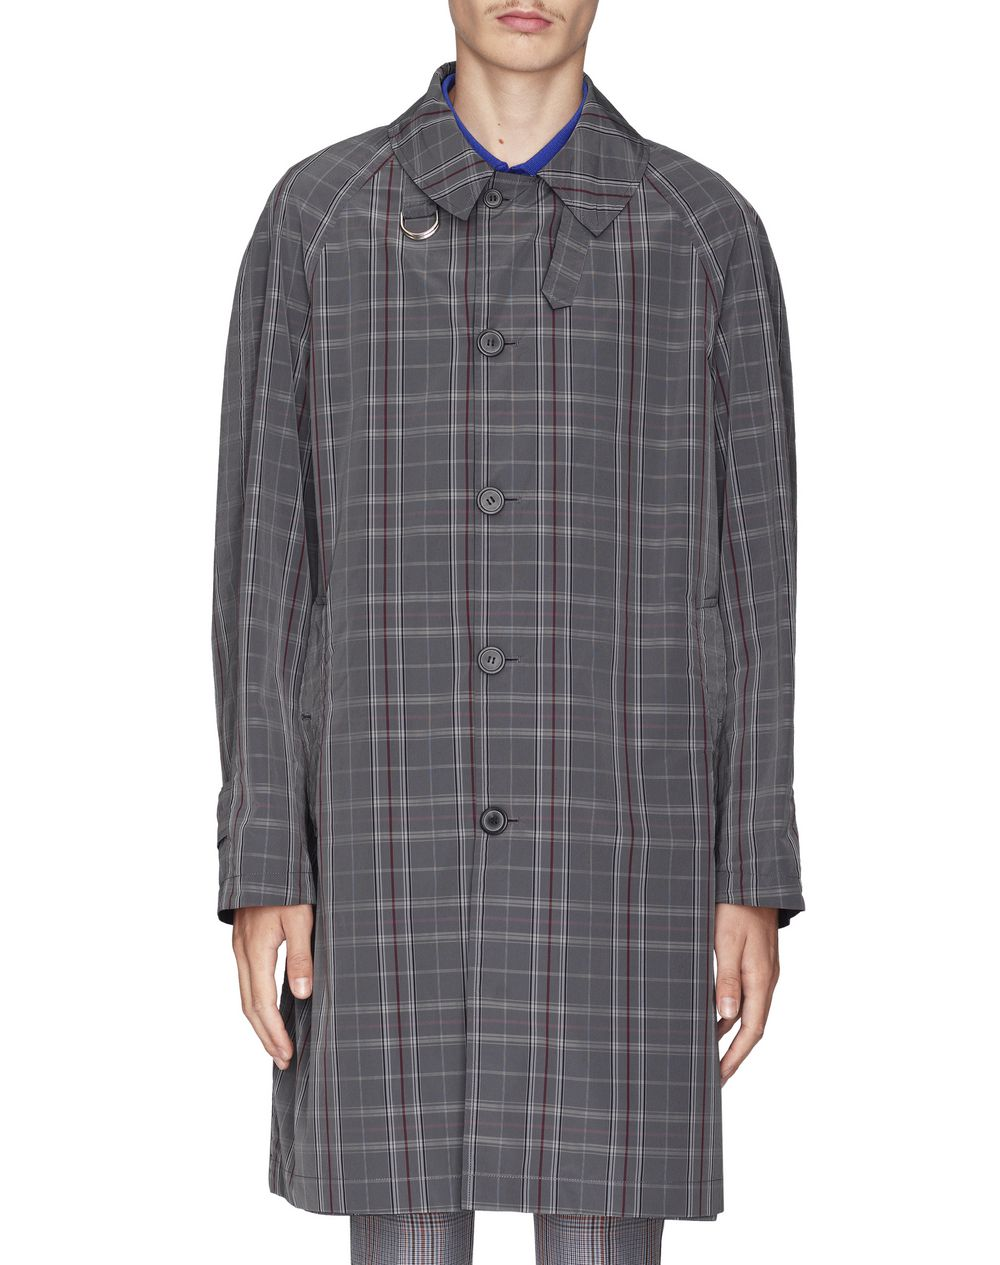 REVERSIBLE CHECKERED COAT - Lanvin